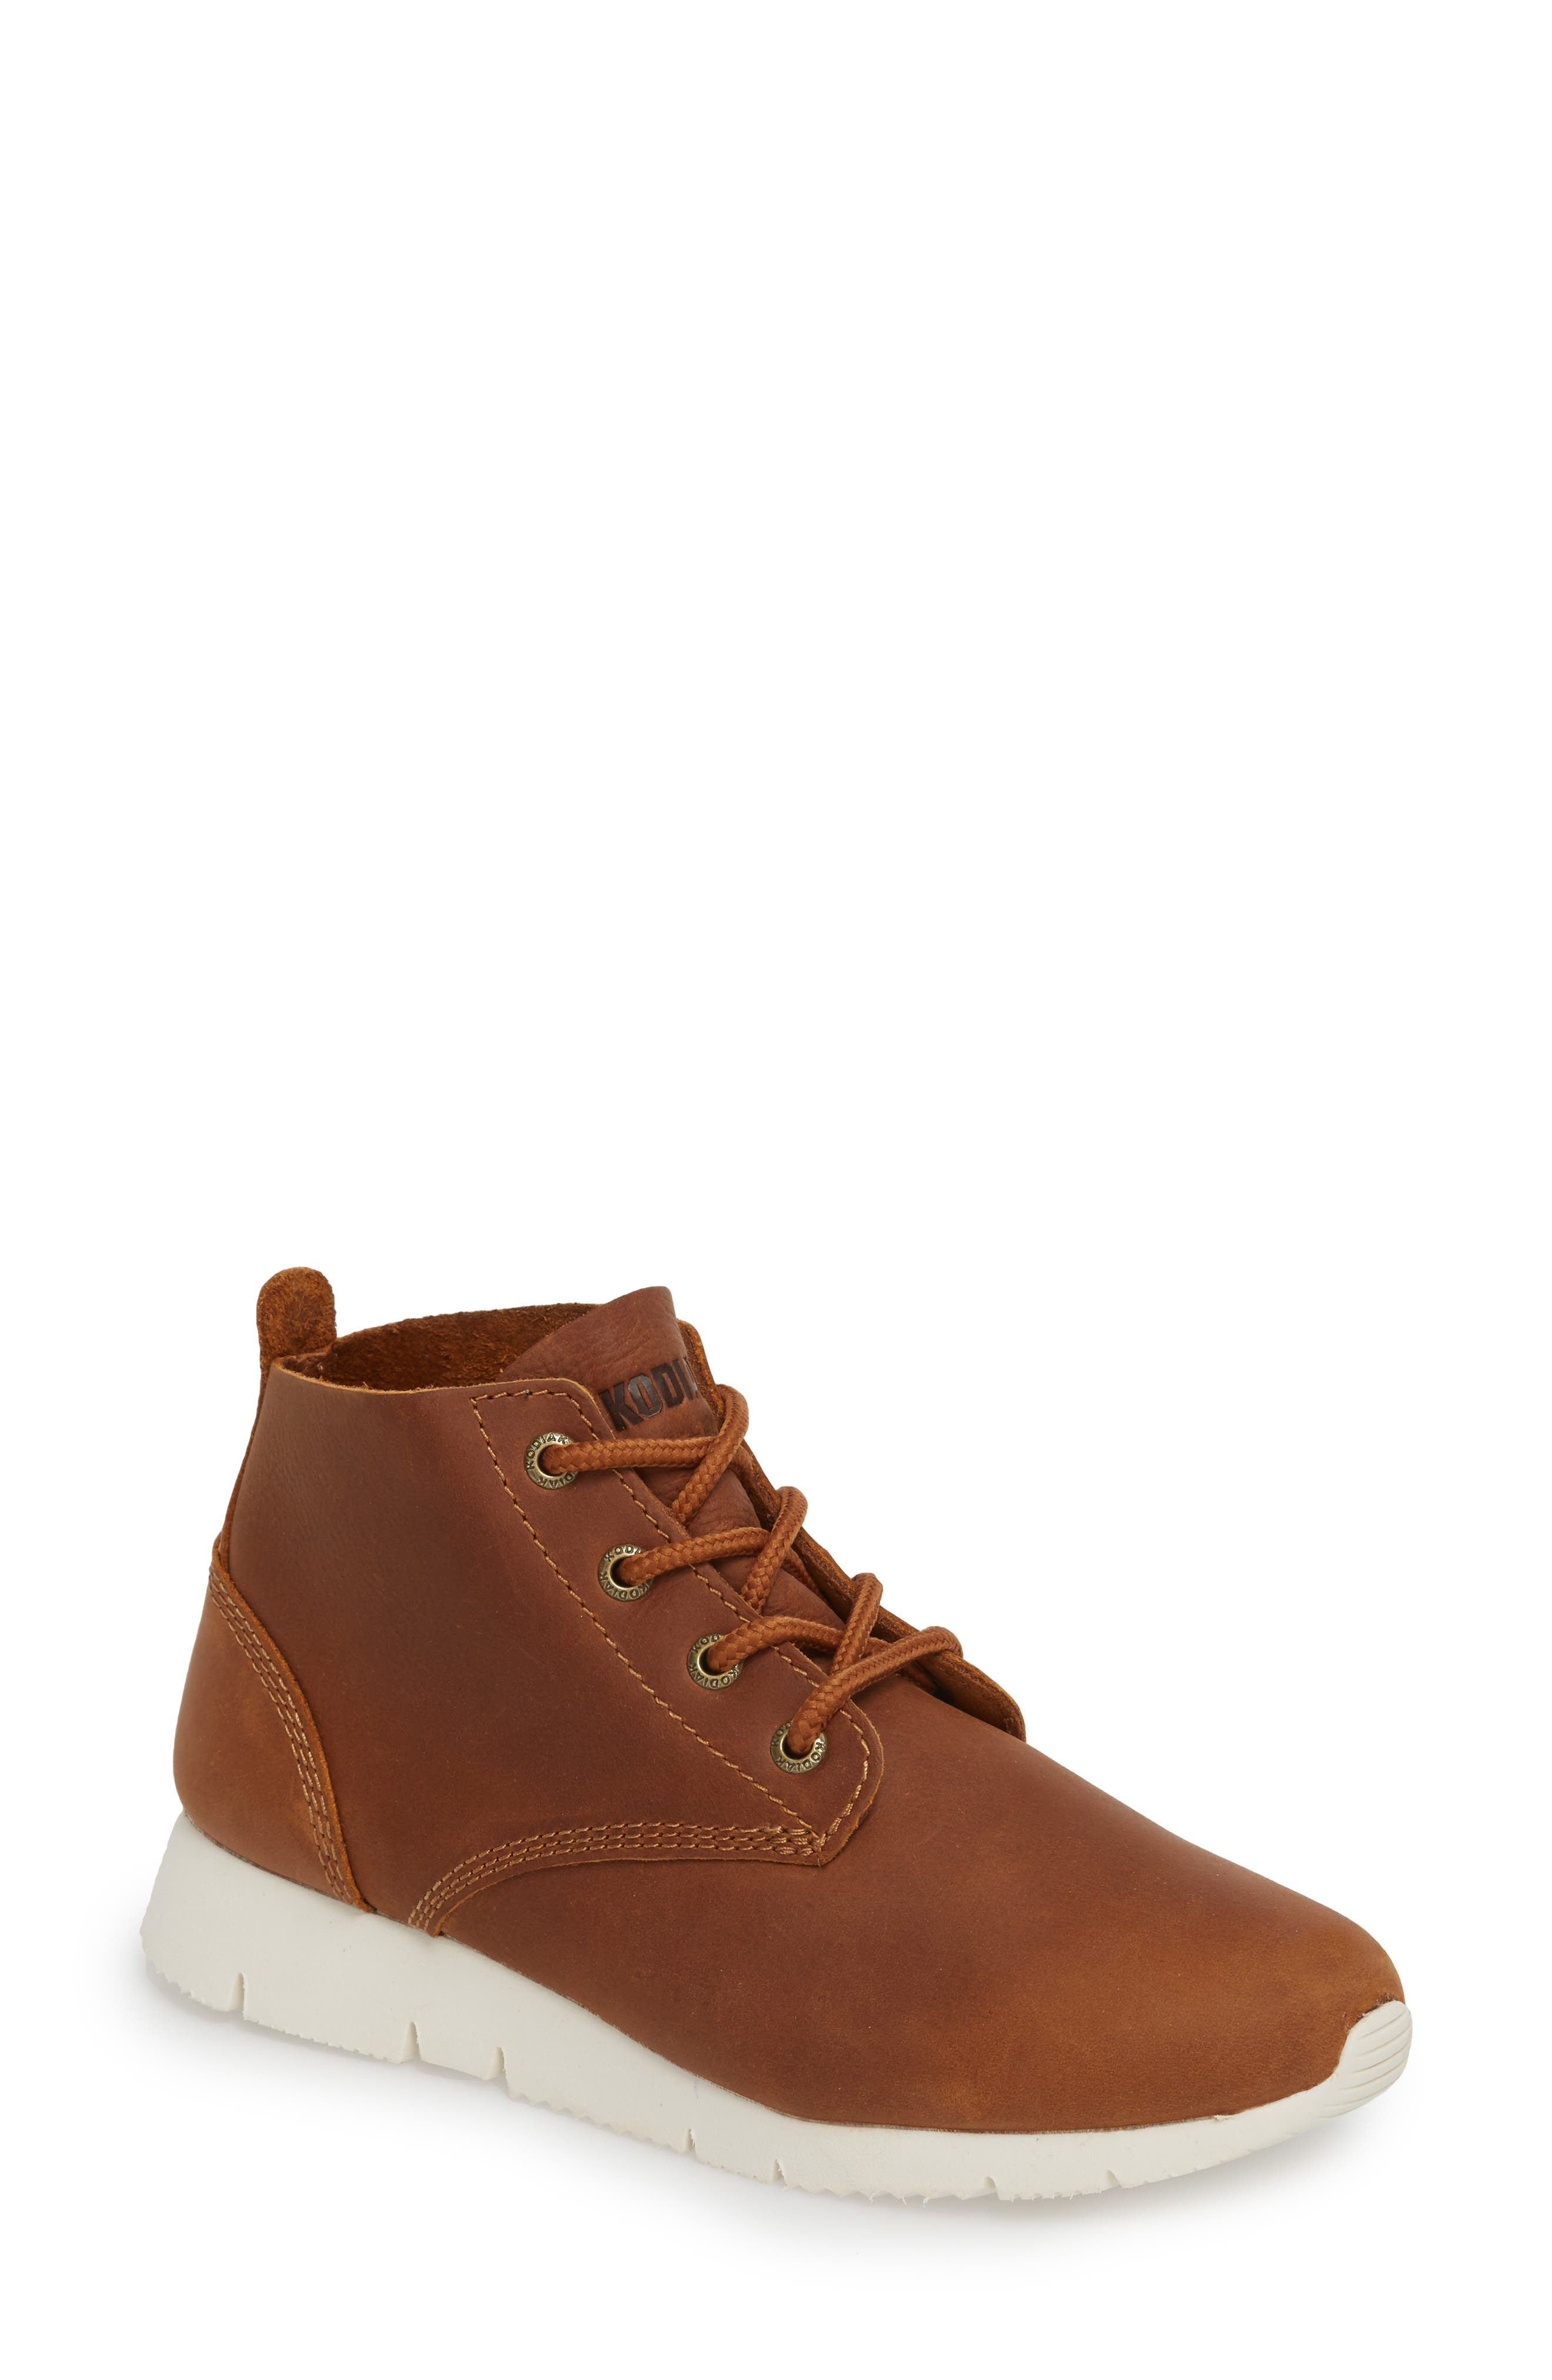 Chukka Boot,                         Main,                         color, Peanut Leather